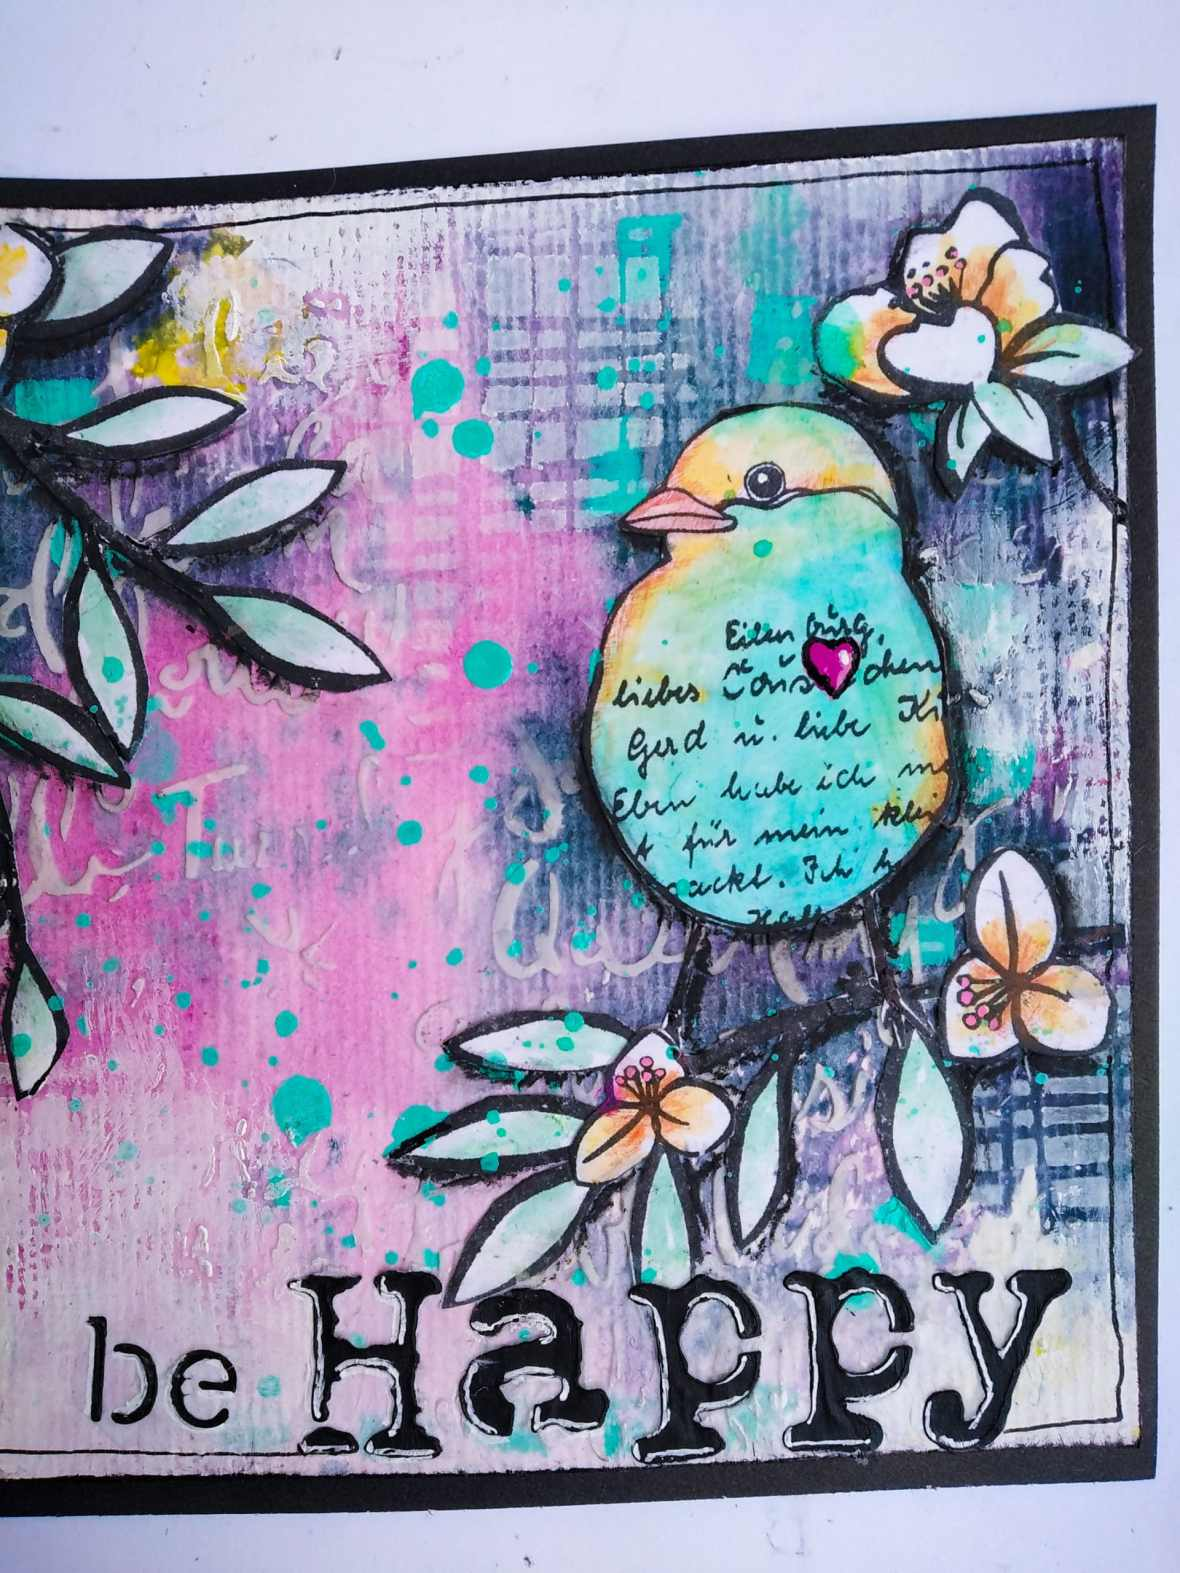 A mixed media project made with acrylic paints, watercolor, acrylic mediums, stencils and Rubber stamps